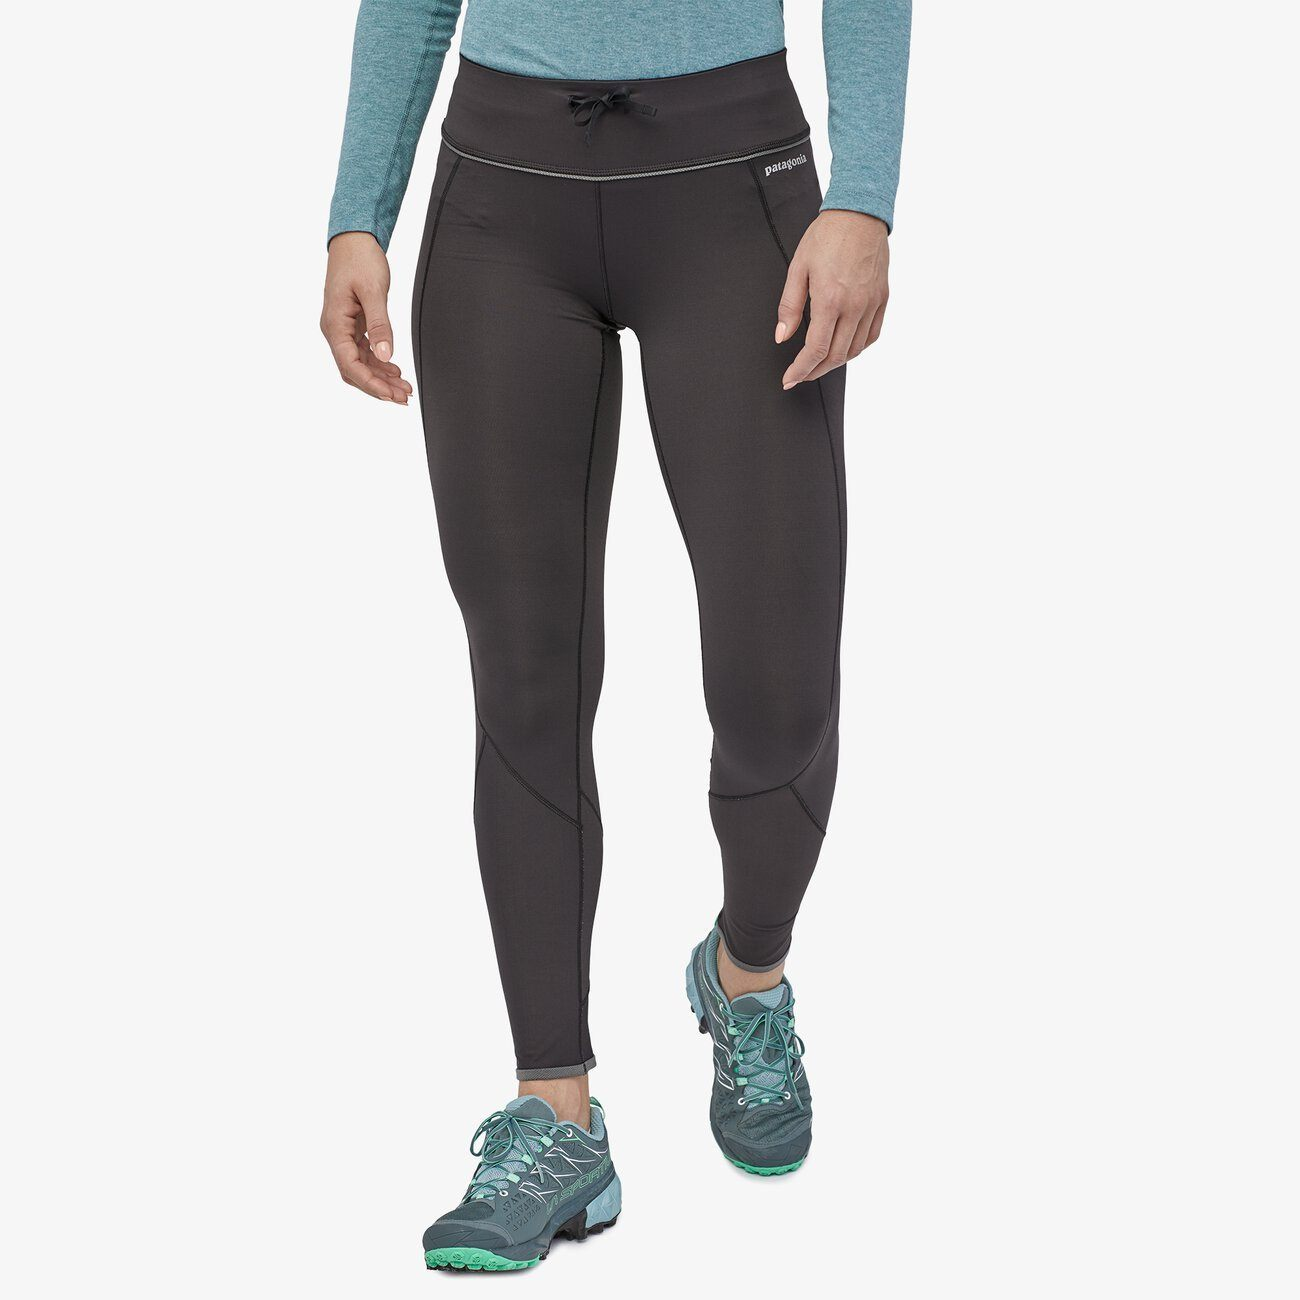 Patagonia - W's Peak Mission Running Tights - Recycled Polyester - Weekendbee - sustainable sportswear